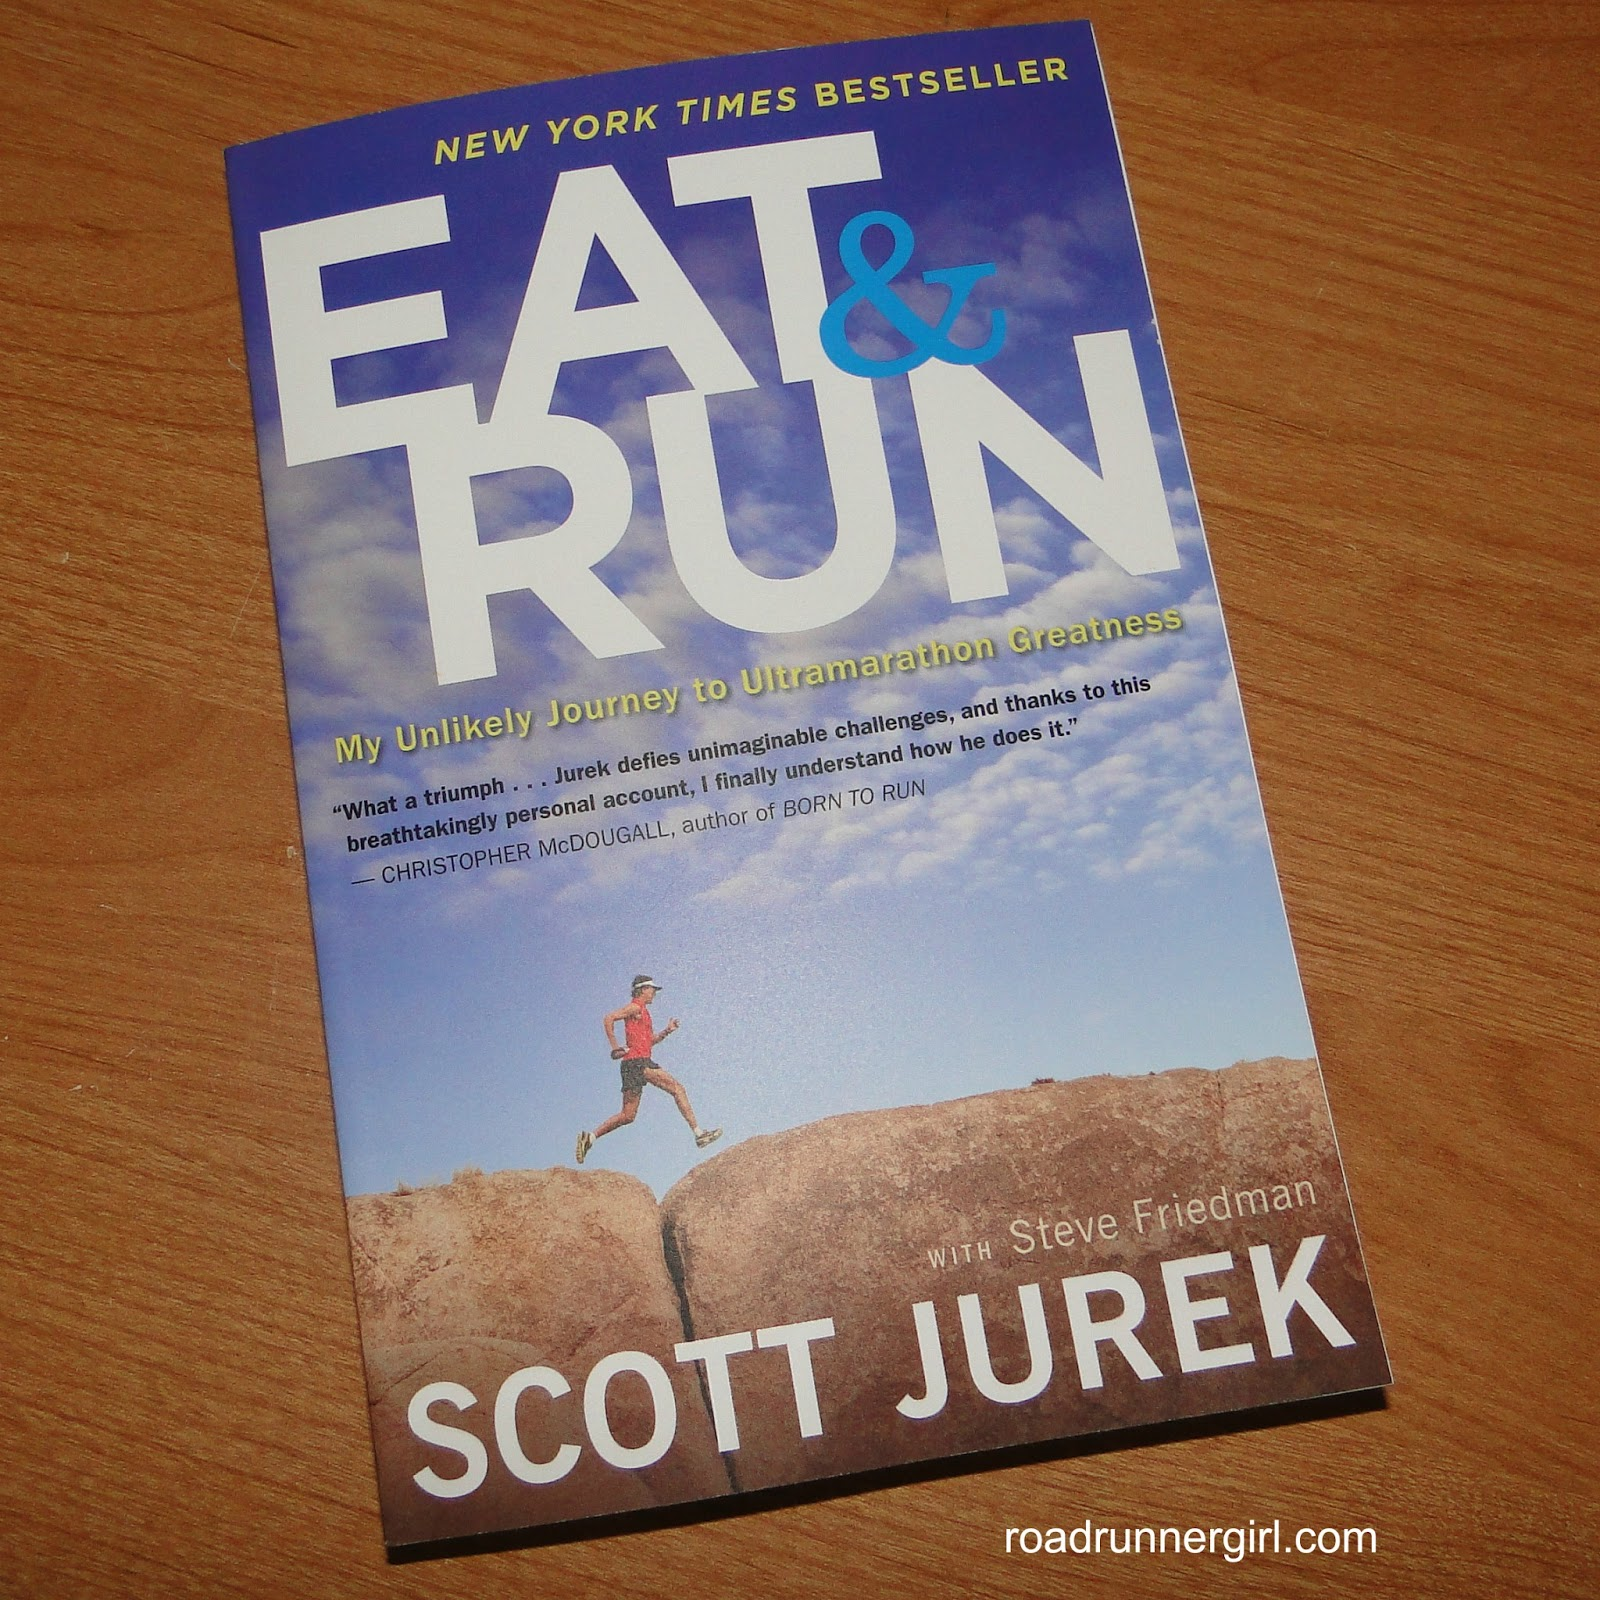 abbeed1ad68 Scott s book gives you insight into his life. He starts the book at the  moment in his running career when he was at his lowest. He was literally  face down ...